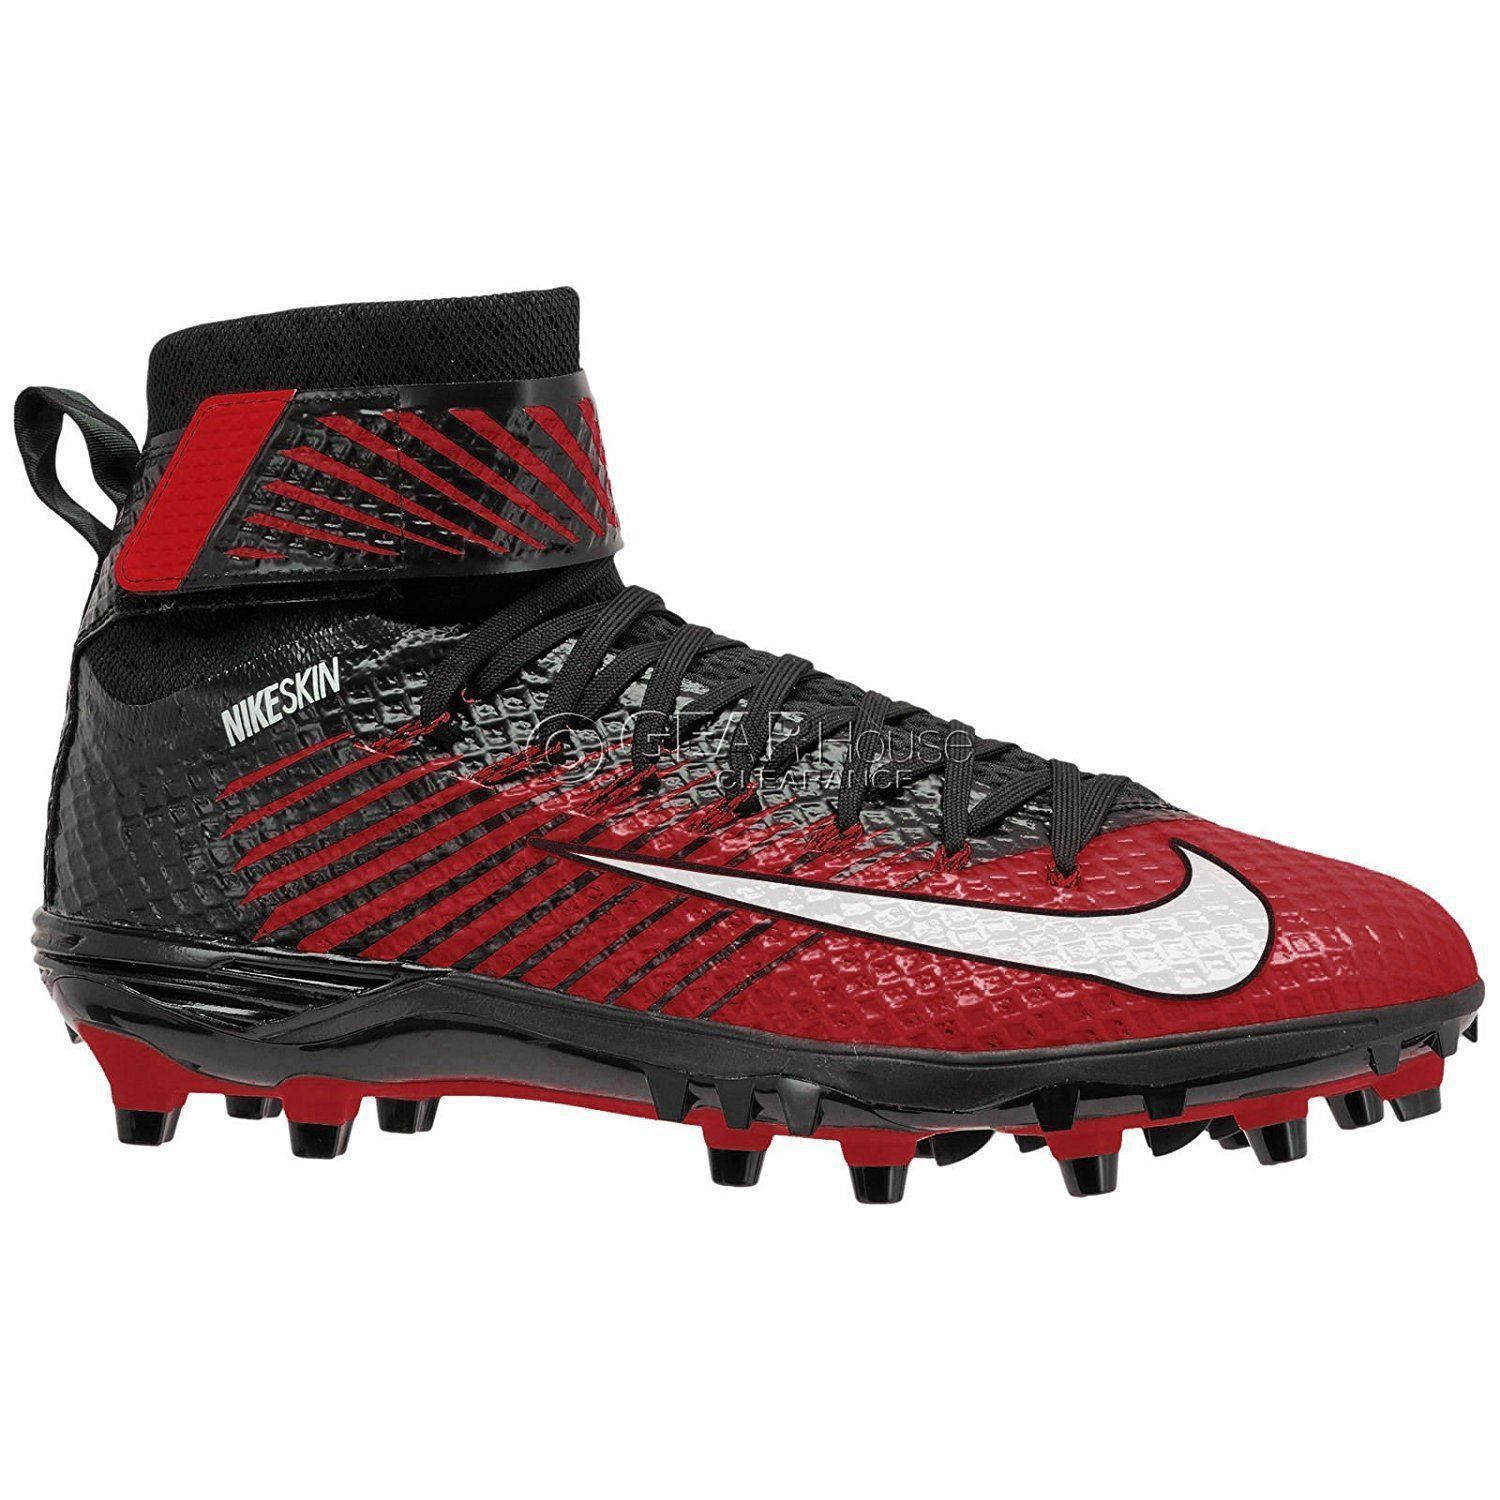 size 40 722a7 9b005 S l1600. S l1600. Previous. NIKE LUNARBEAST ELITE TD MEN S FOOTBALL CLEAT  779422 016 Size 10 Retail ...